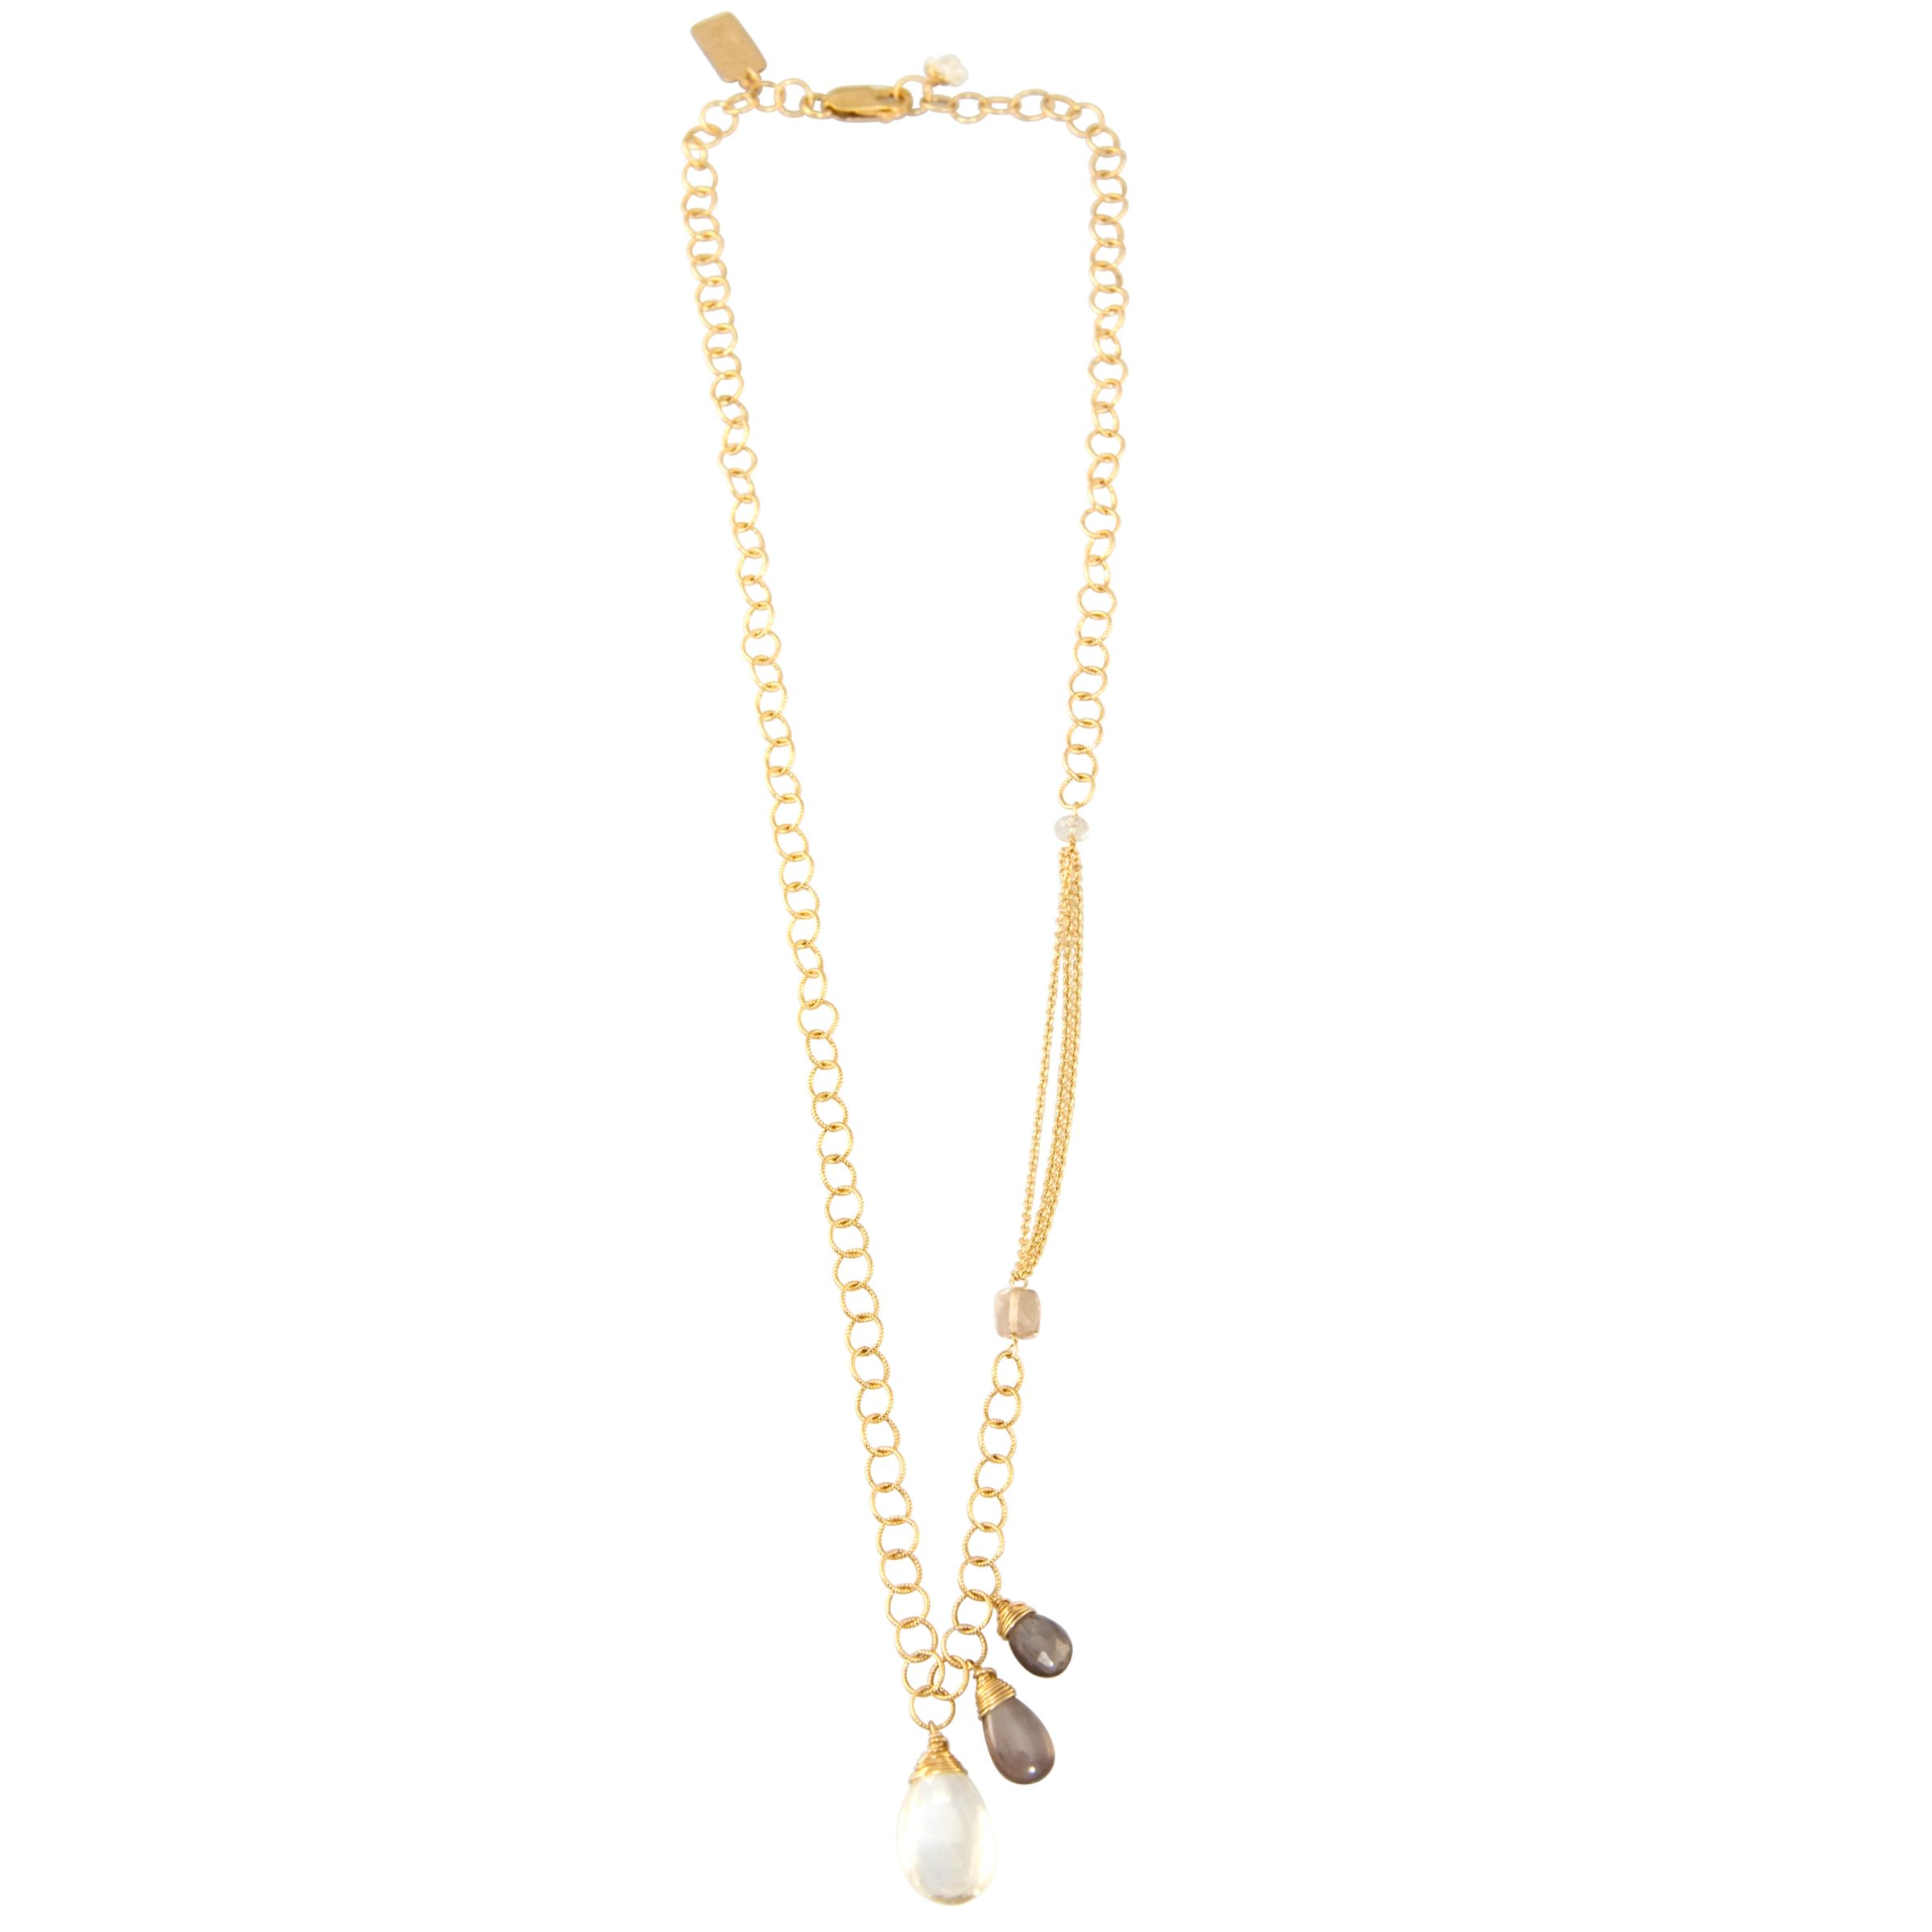 RueBelle 3 Champagne Drop Gold Filled Chain Link Necklace